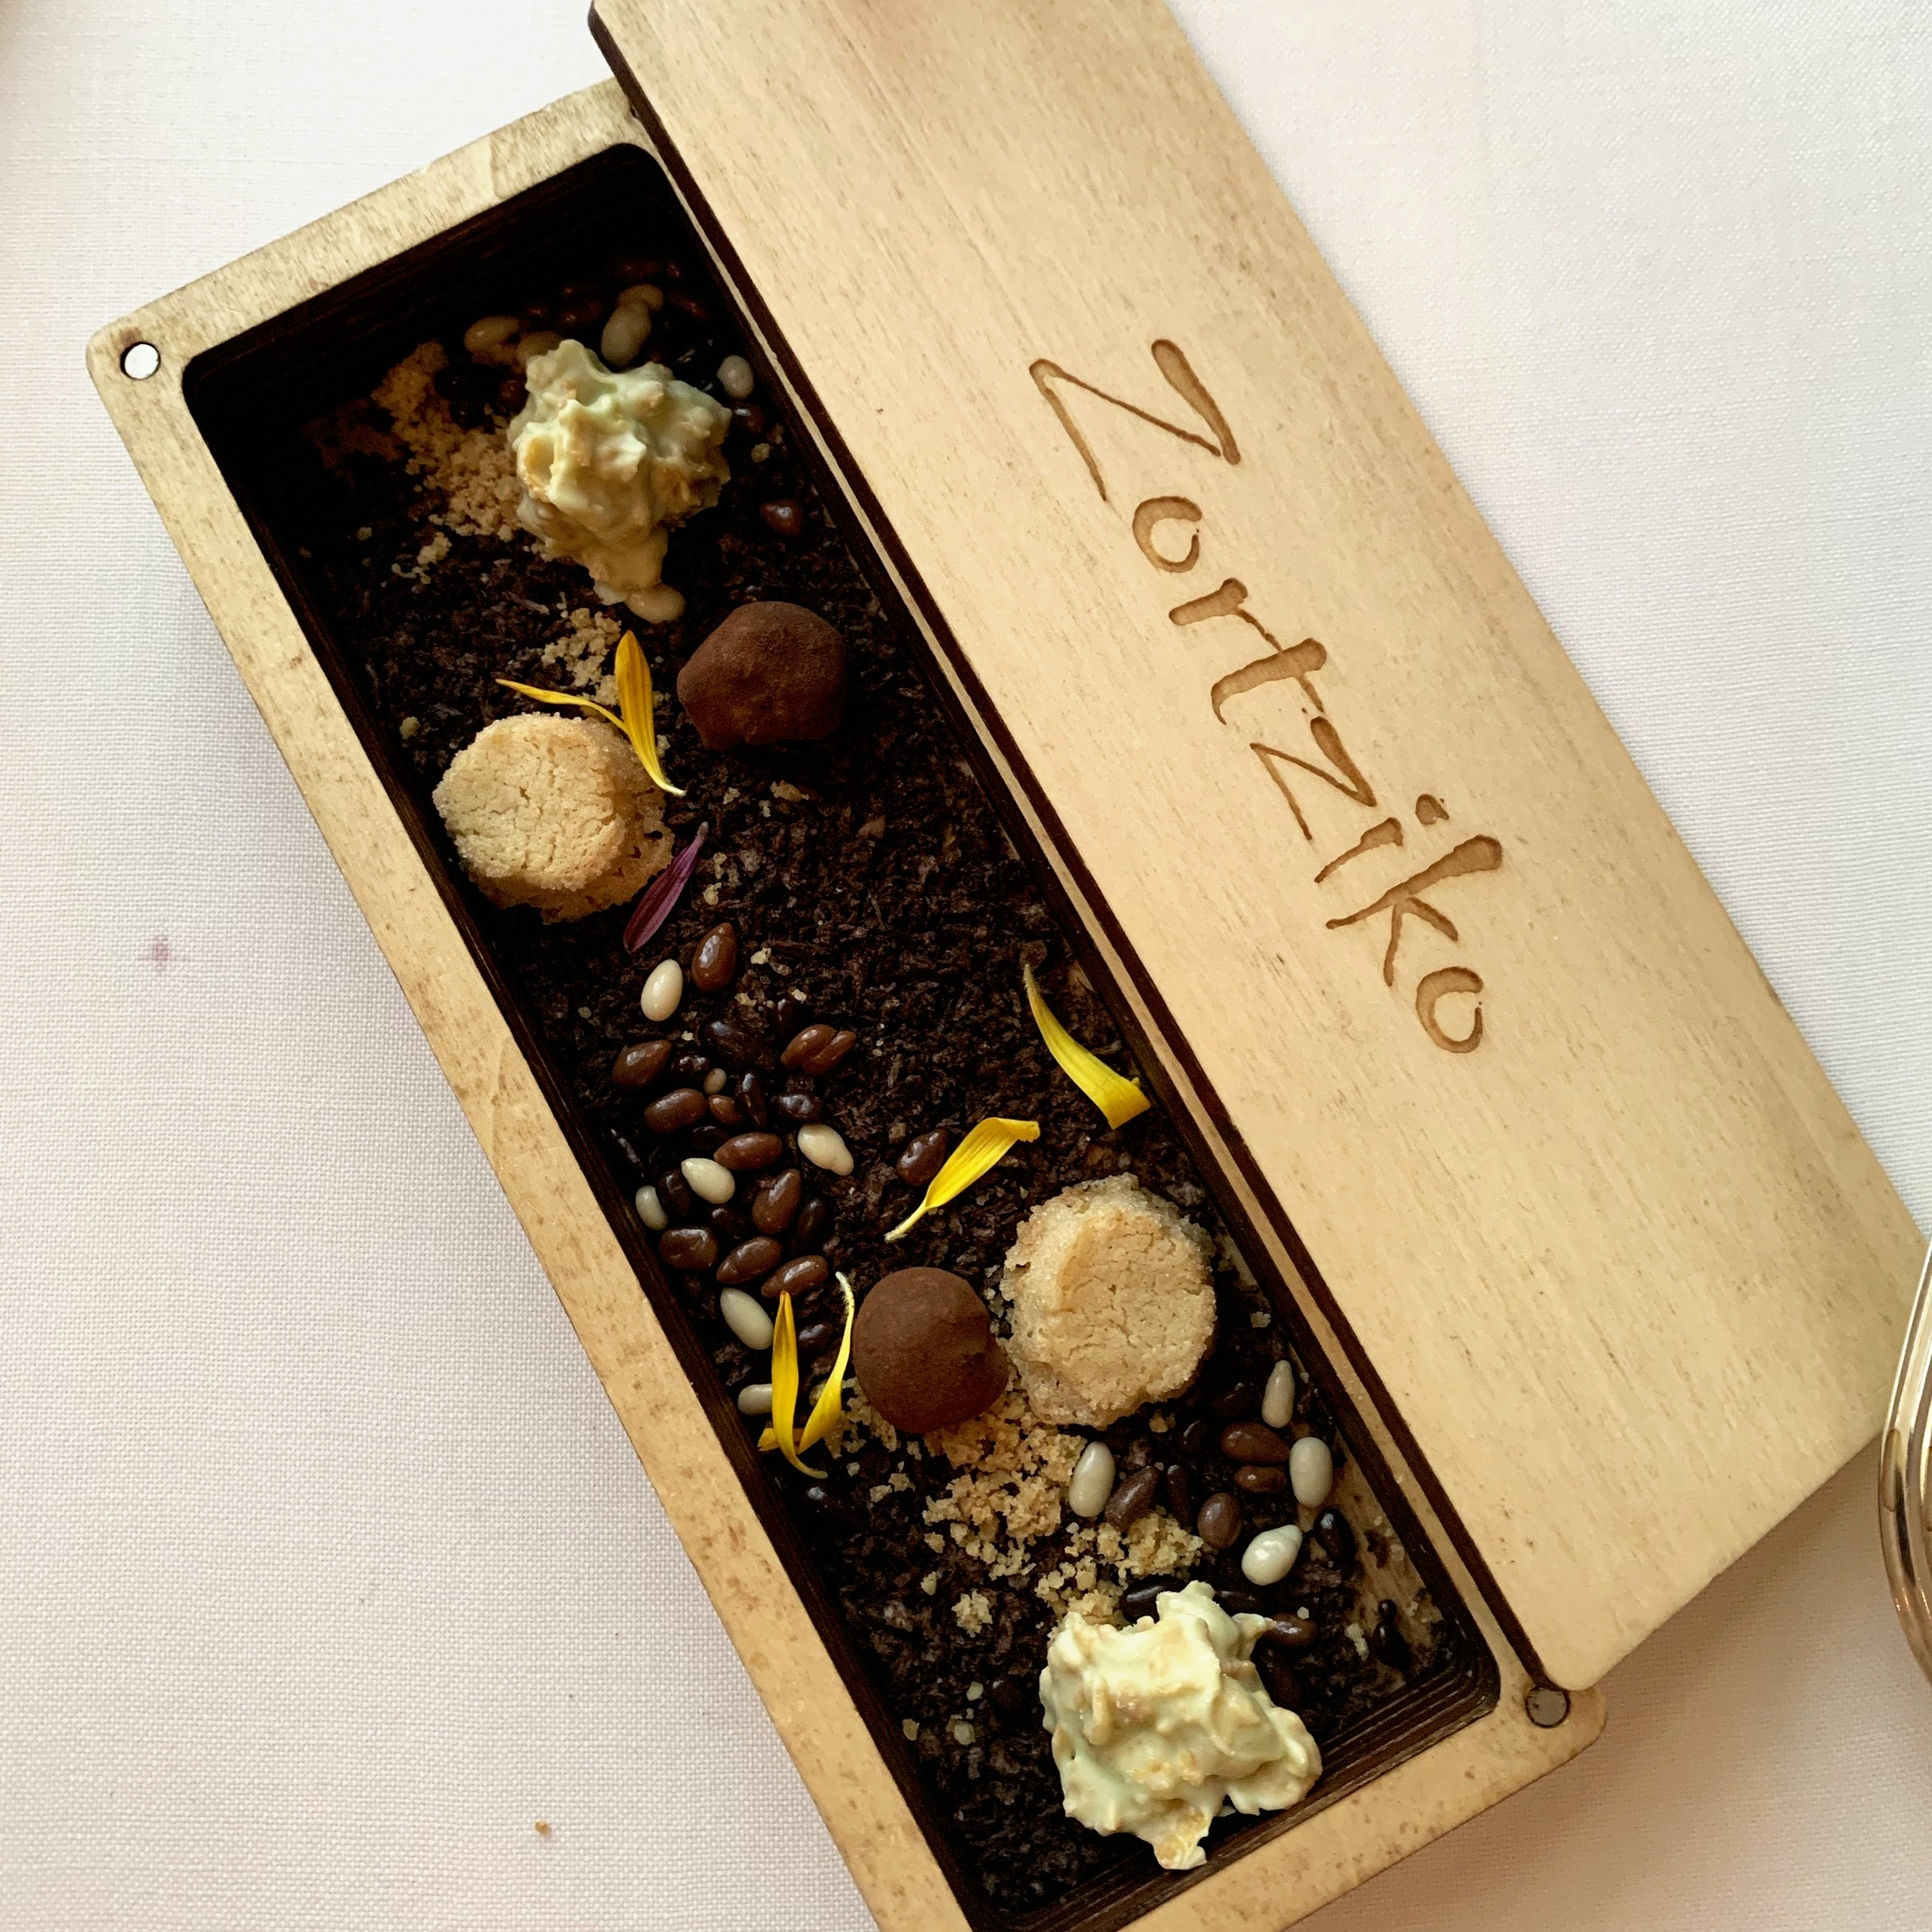 The petits fours box